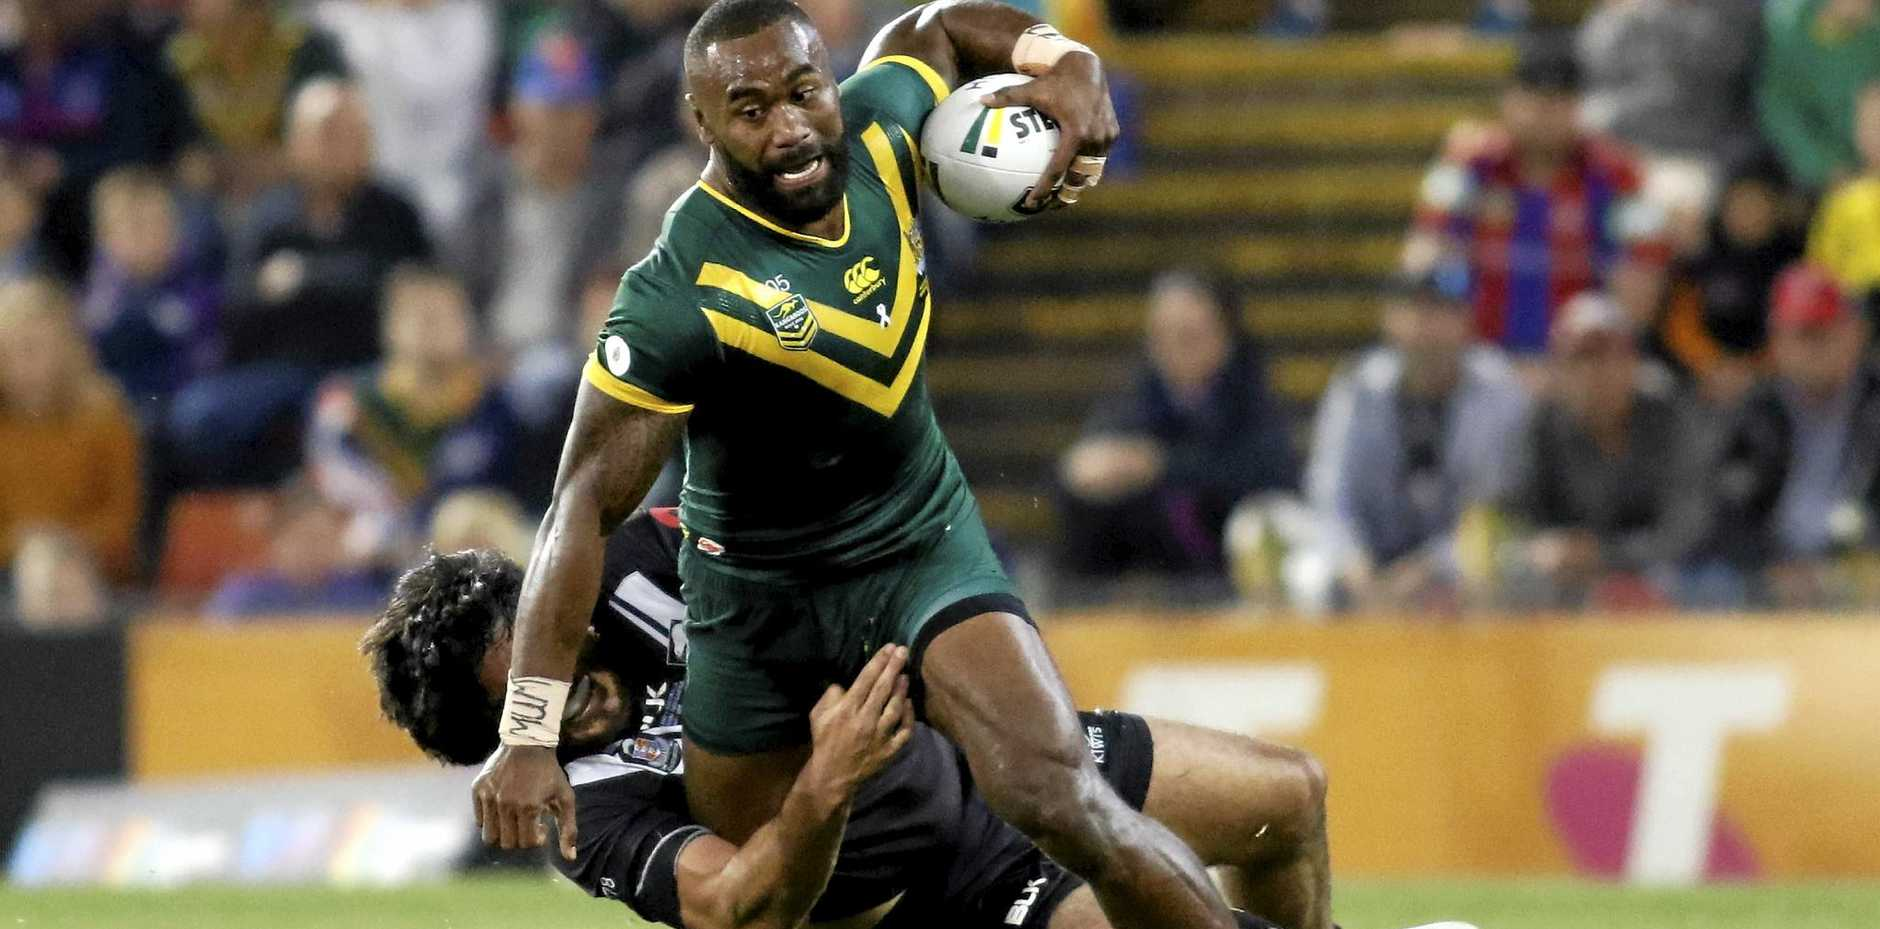 TROUBLED TIMES: Semi Radradra in action during his Kangaroos debut earlier this year.